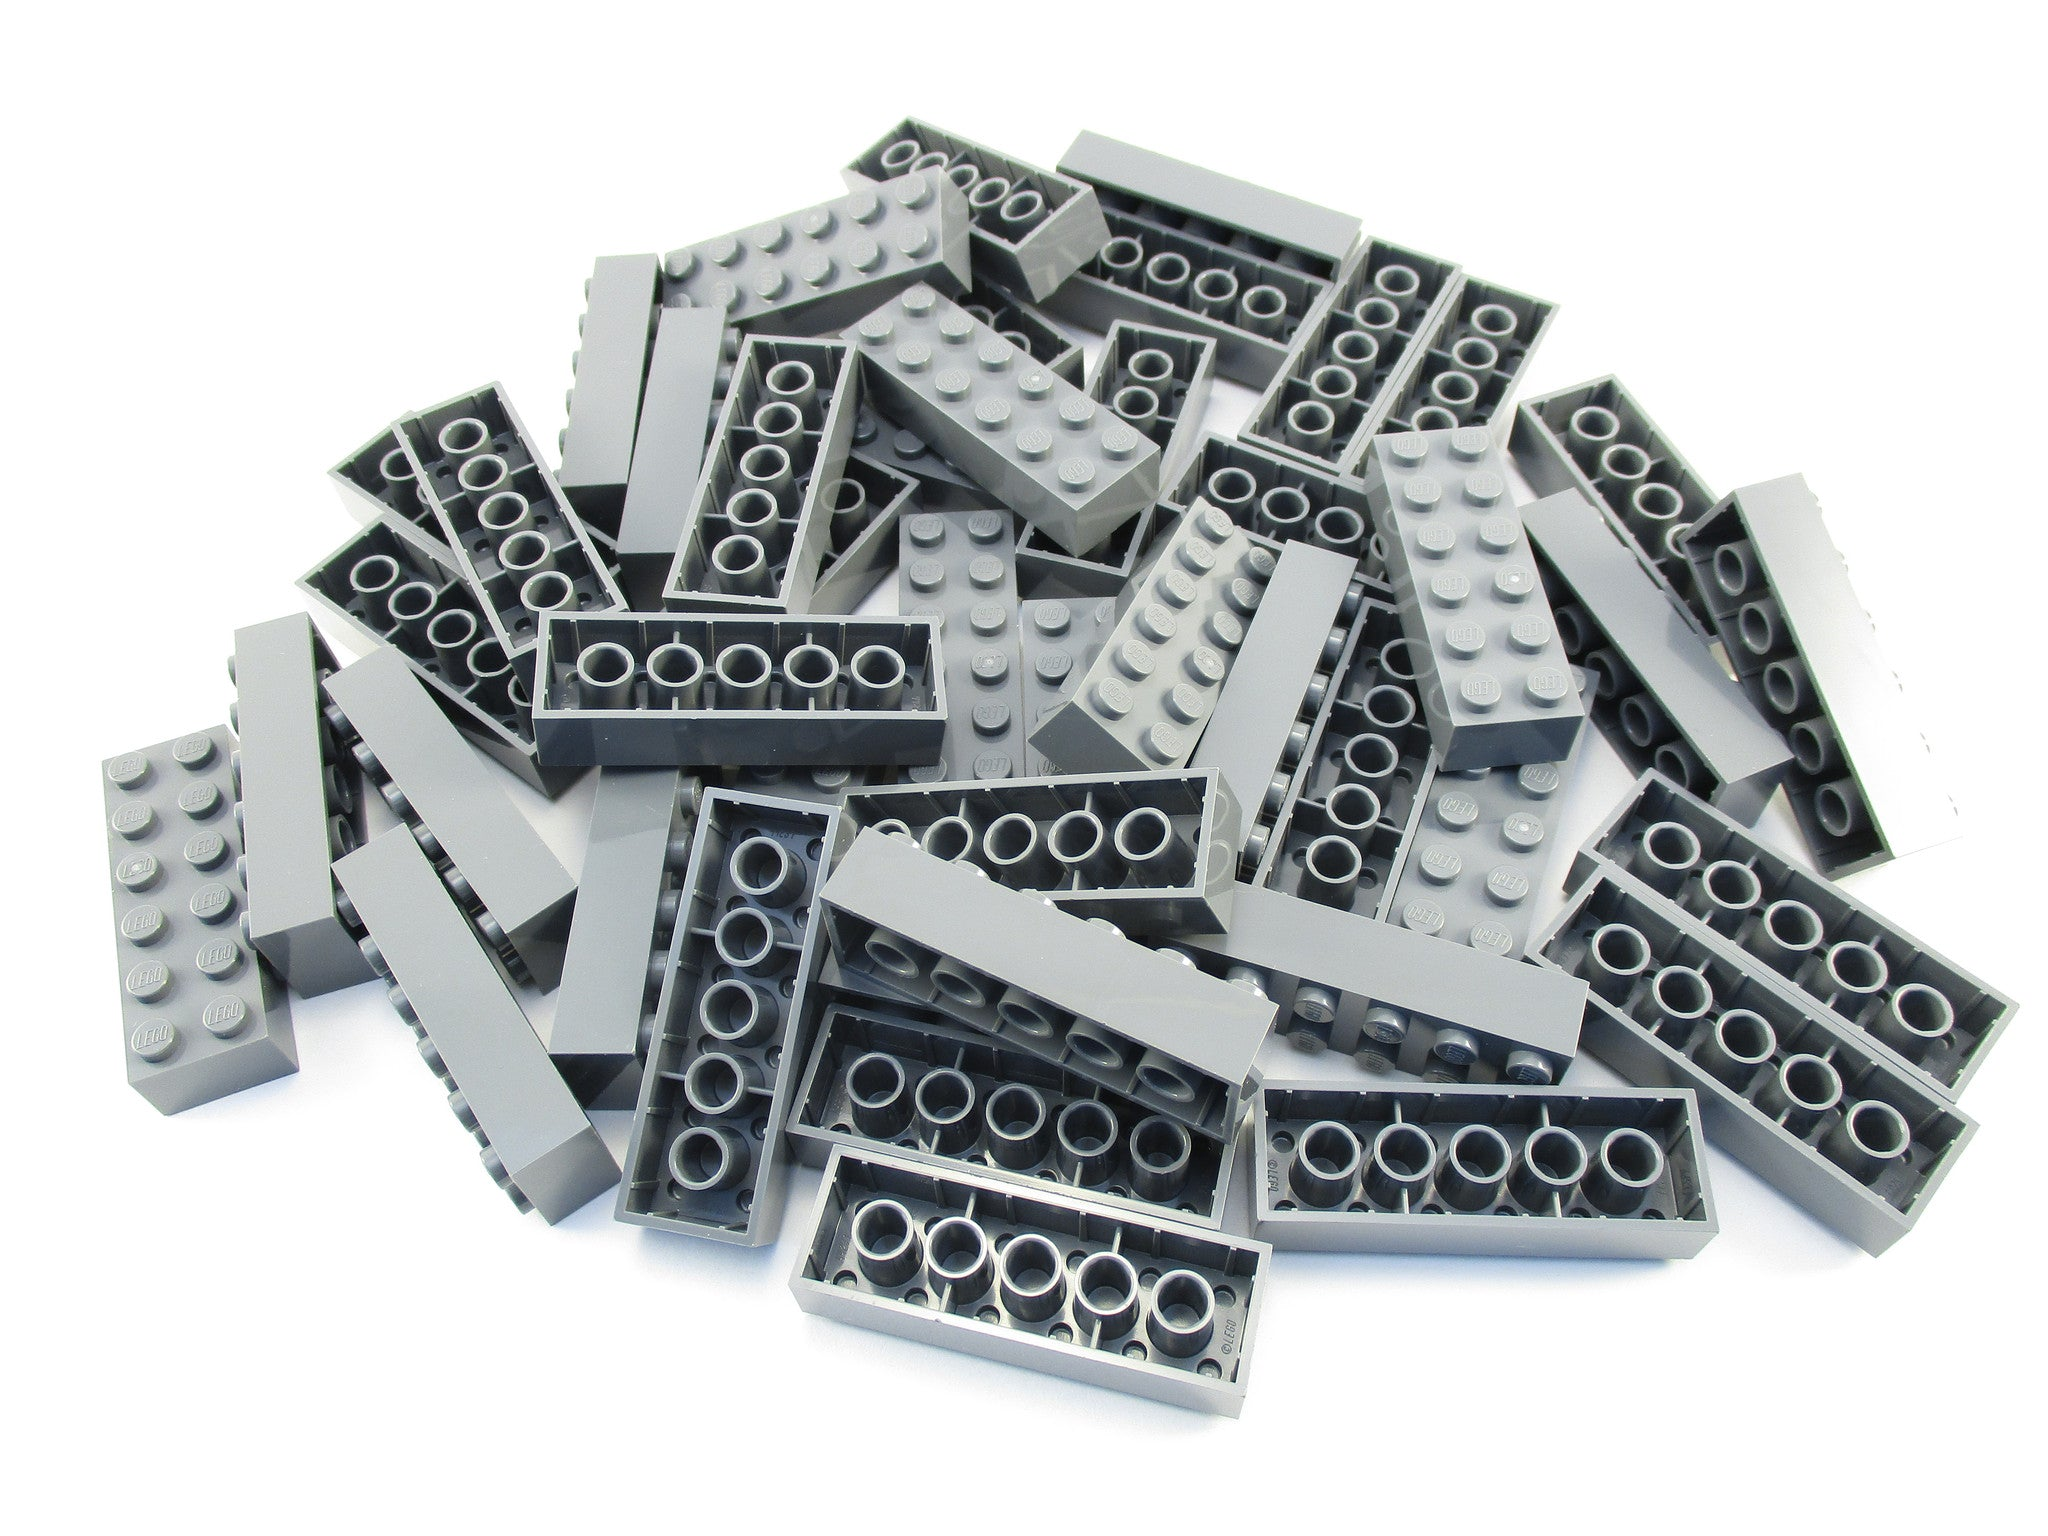 LEGO Dark Bluish Grey Brick 2x6 Lot of 50 Parts Pieces 2456 Gray